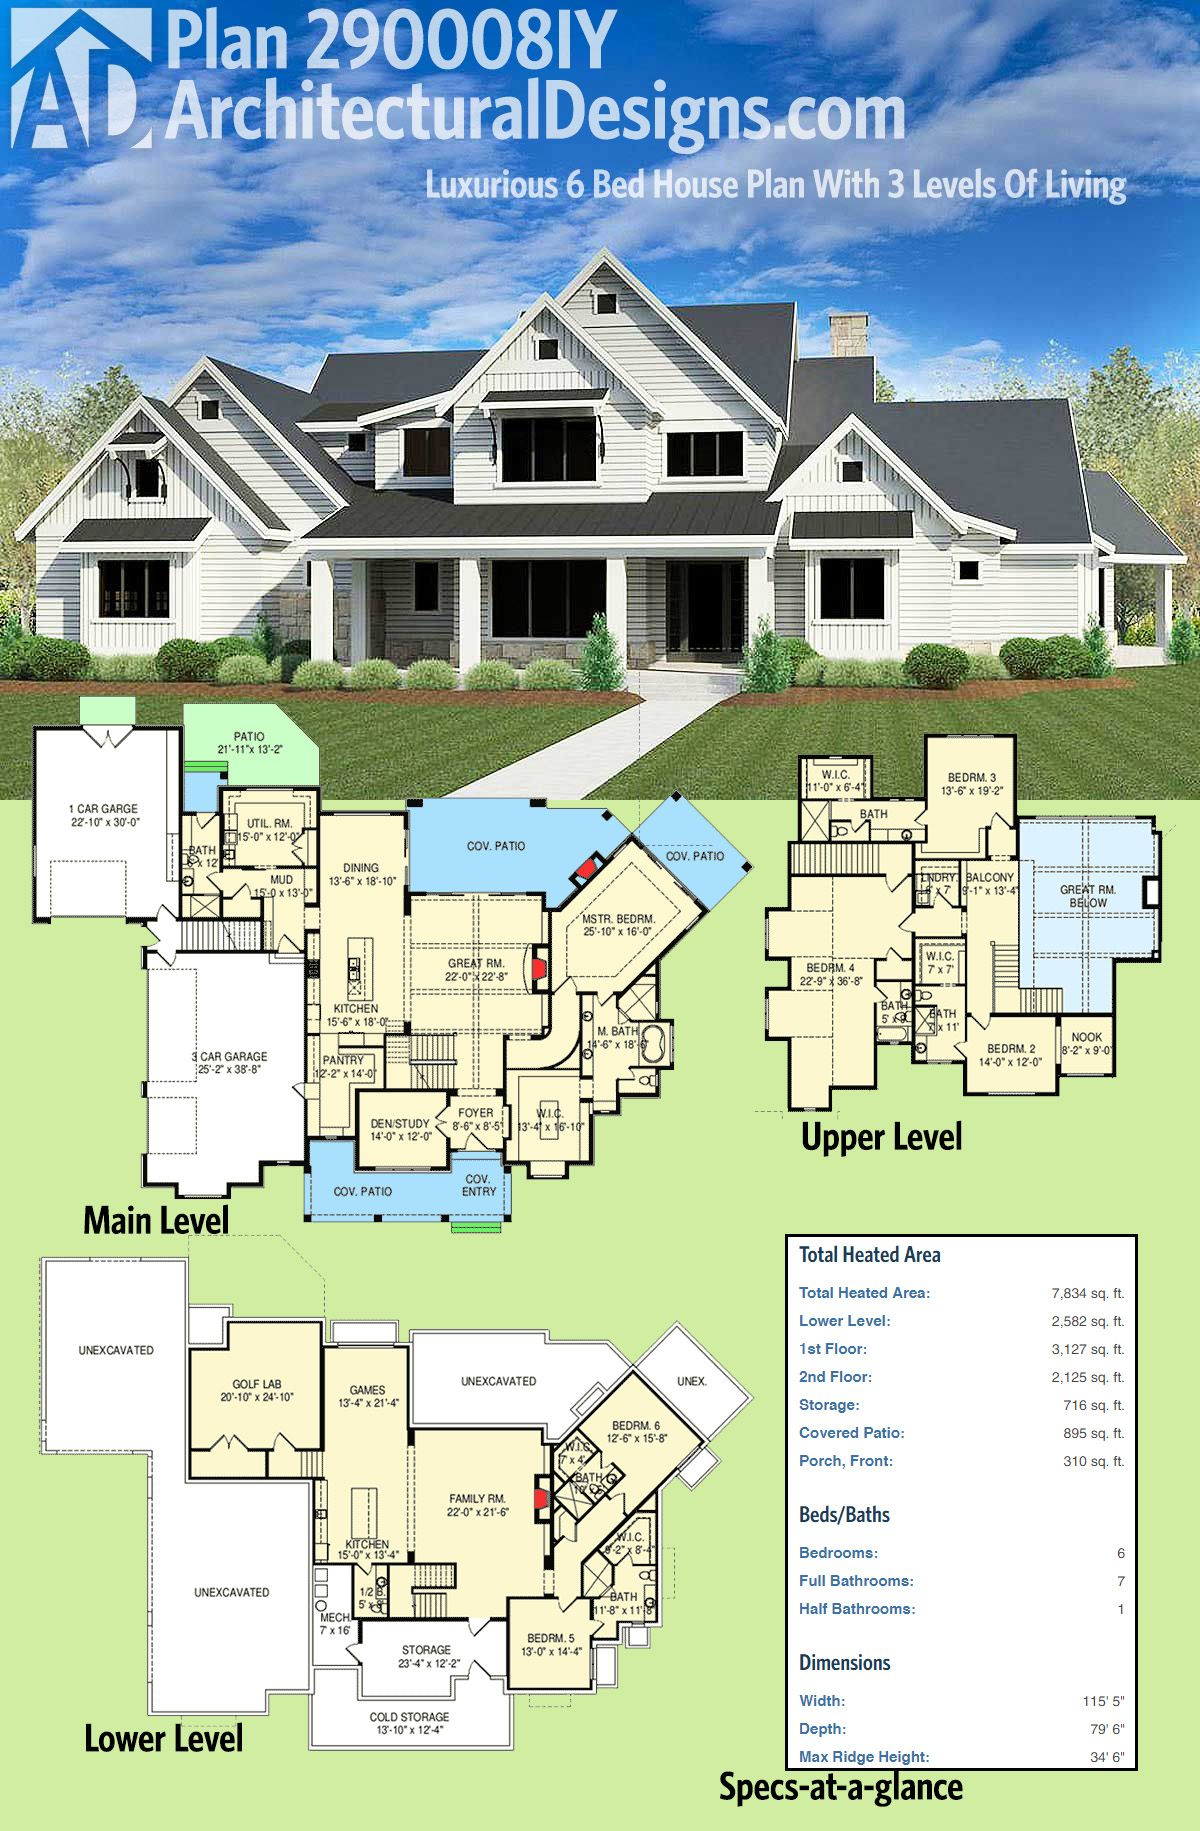 Plan 290008iy Luxurious 6 Bed House Plan With 3 Levels Of Living